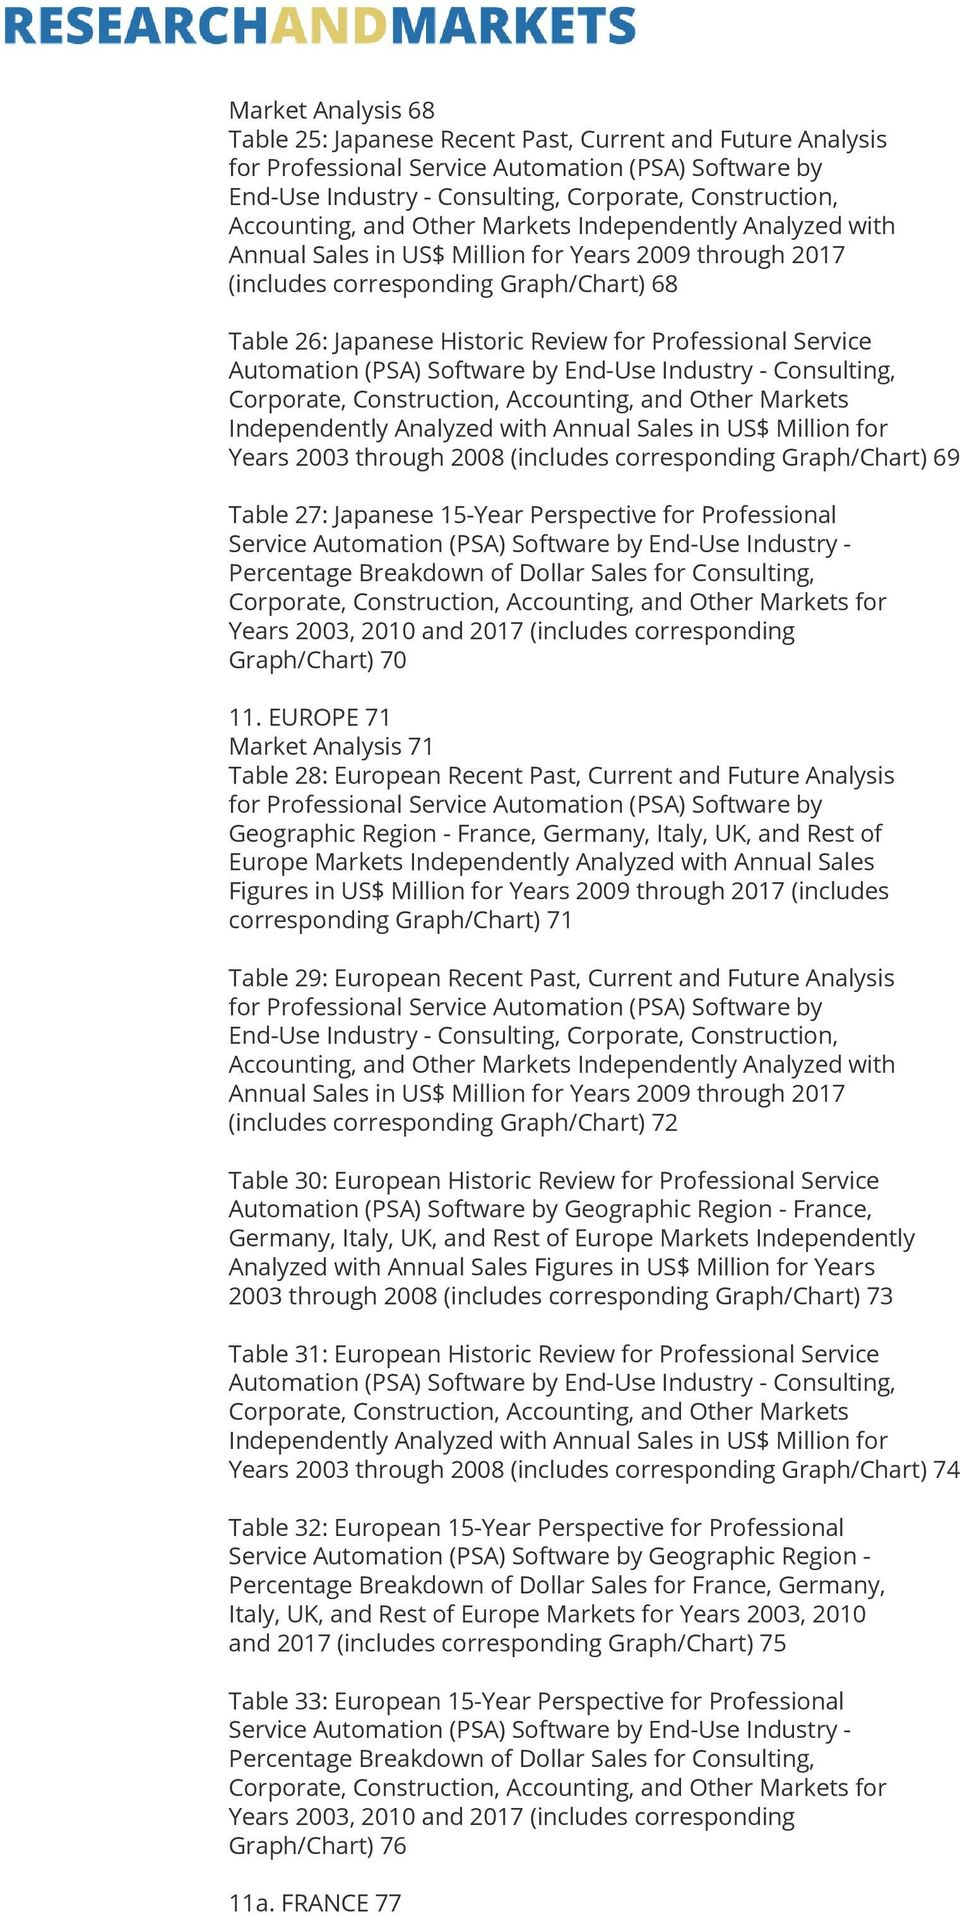 EUROPE 71 Market Analysis 71 Table 28: European Recent Past, Current and Future Analysis Geographic Region - France, Germany, Italy, UK, and Rest of Europe Markets Independently Analyzed with Annual